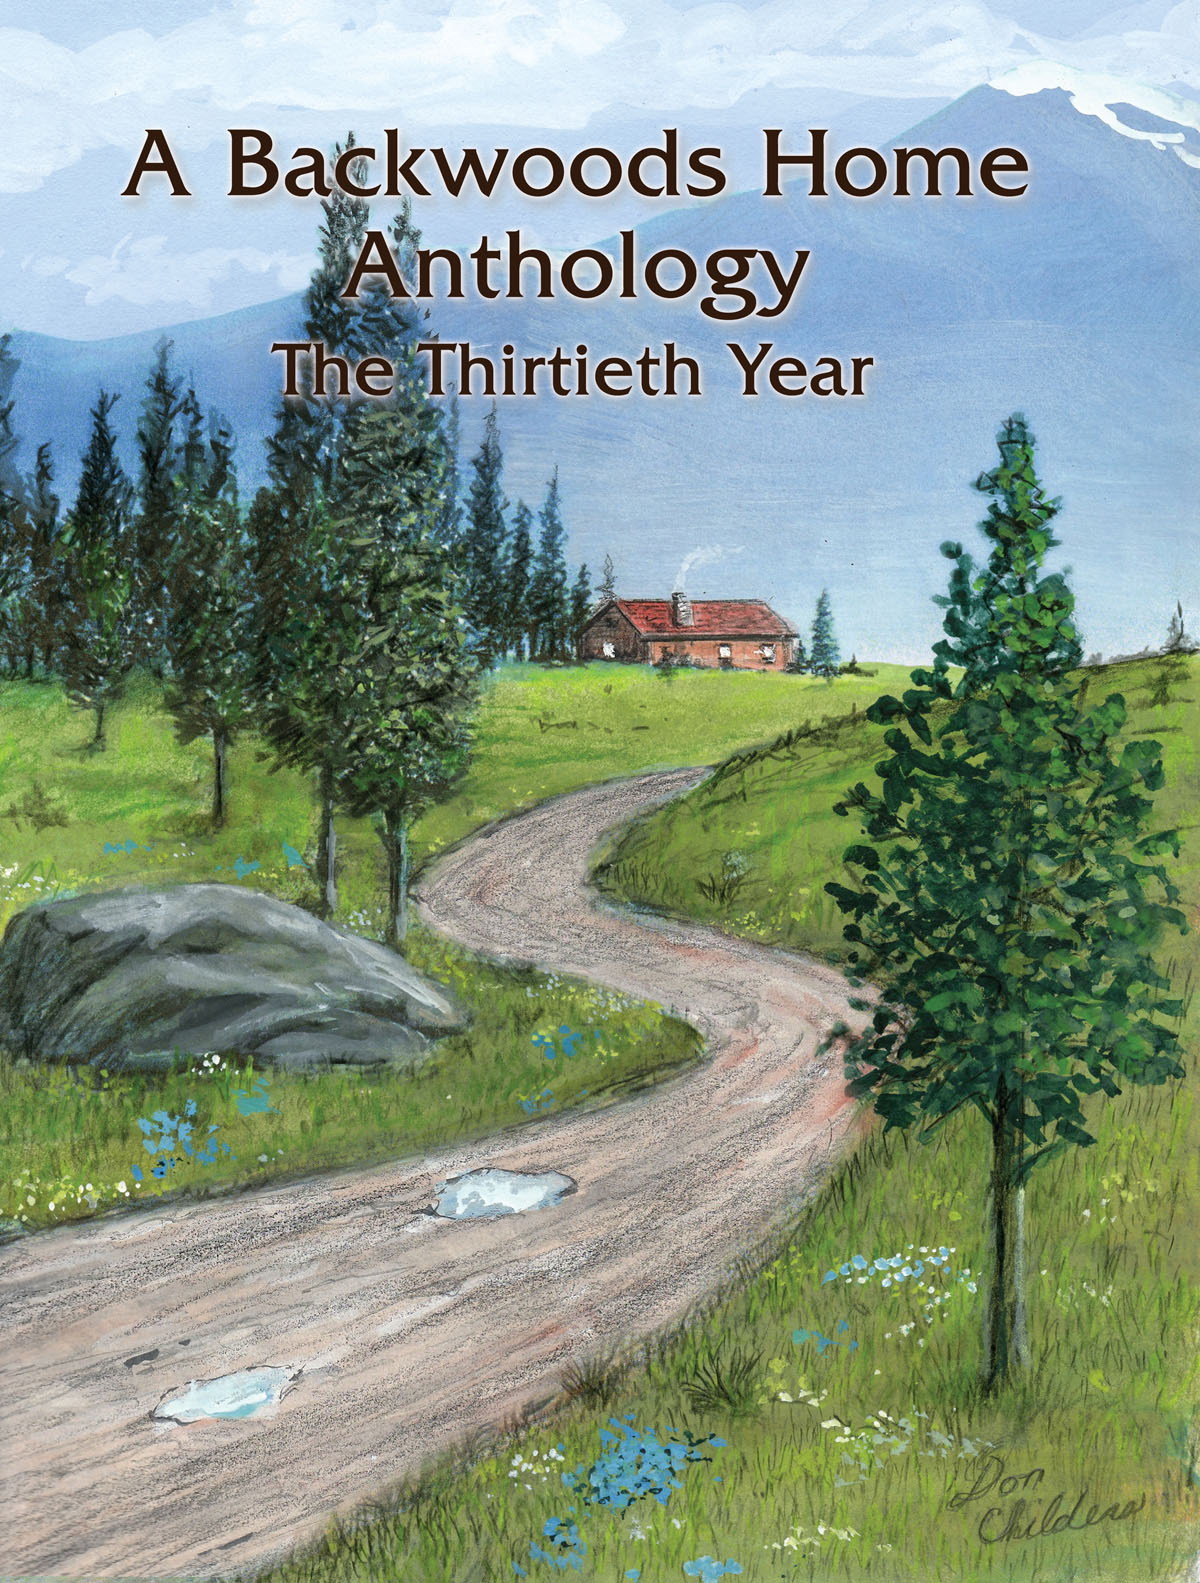 A Backwoods Home Anthology The Thirtieth Year